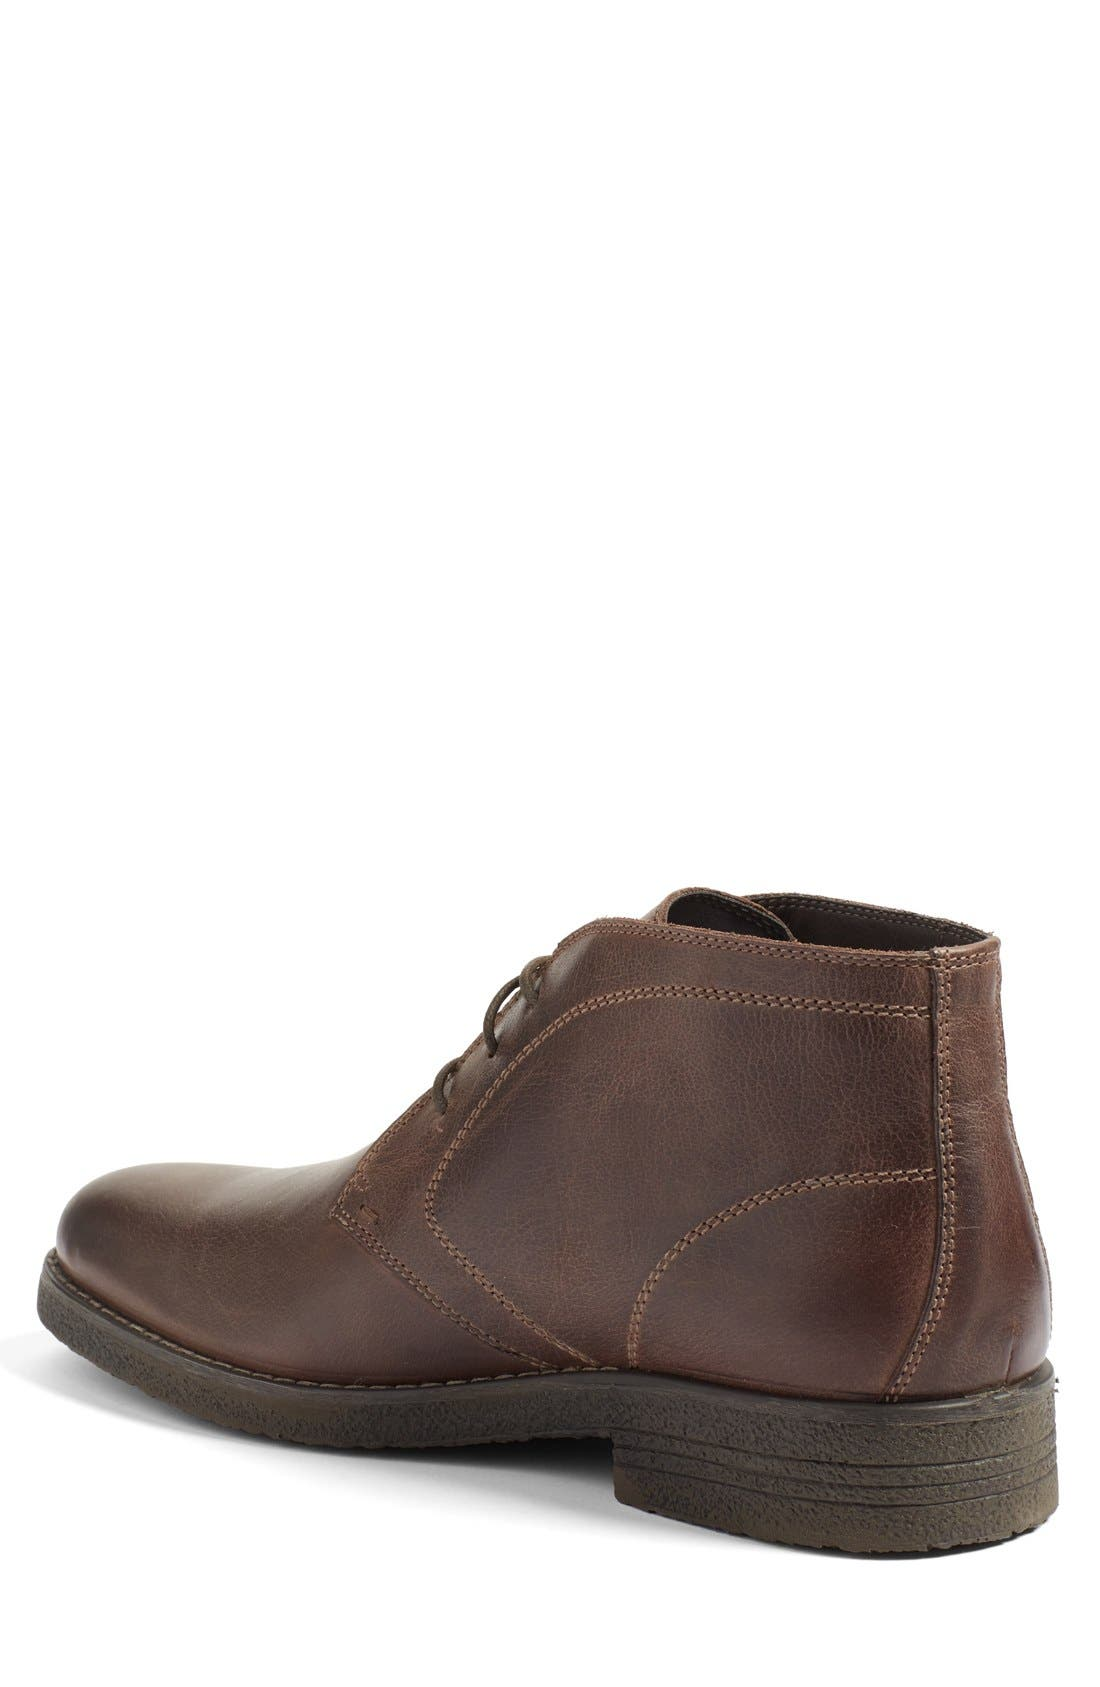 'Tyler' Chukka Boot,                             Alternate thumbnail 6, color,